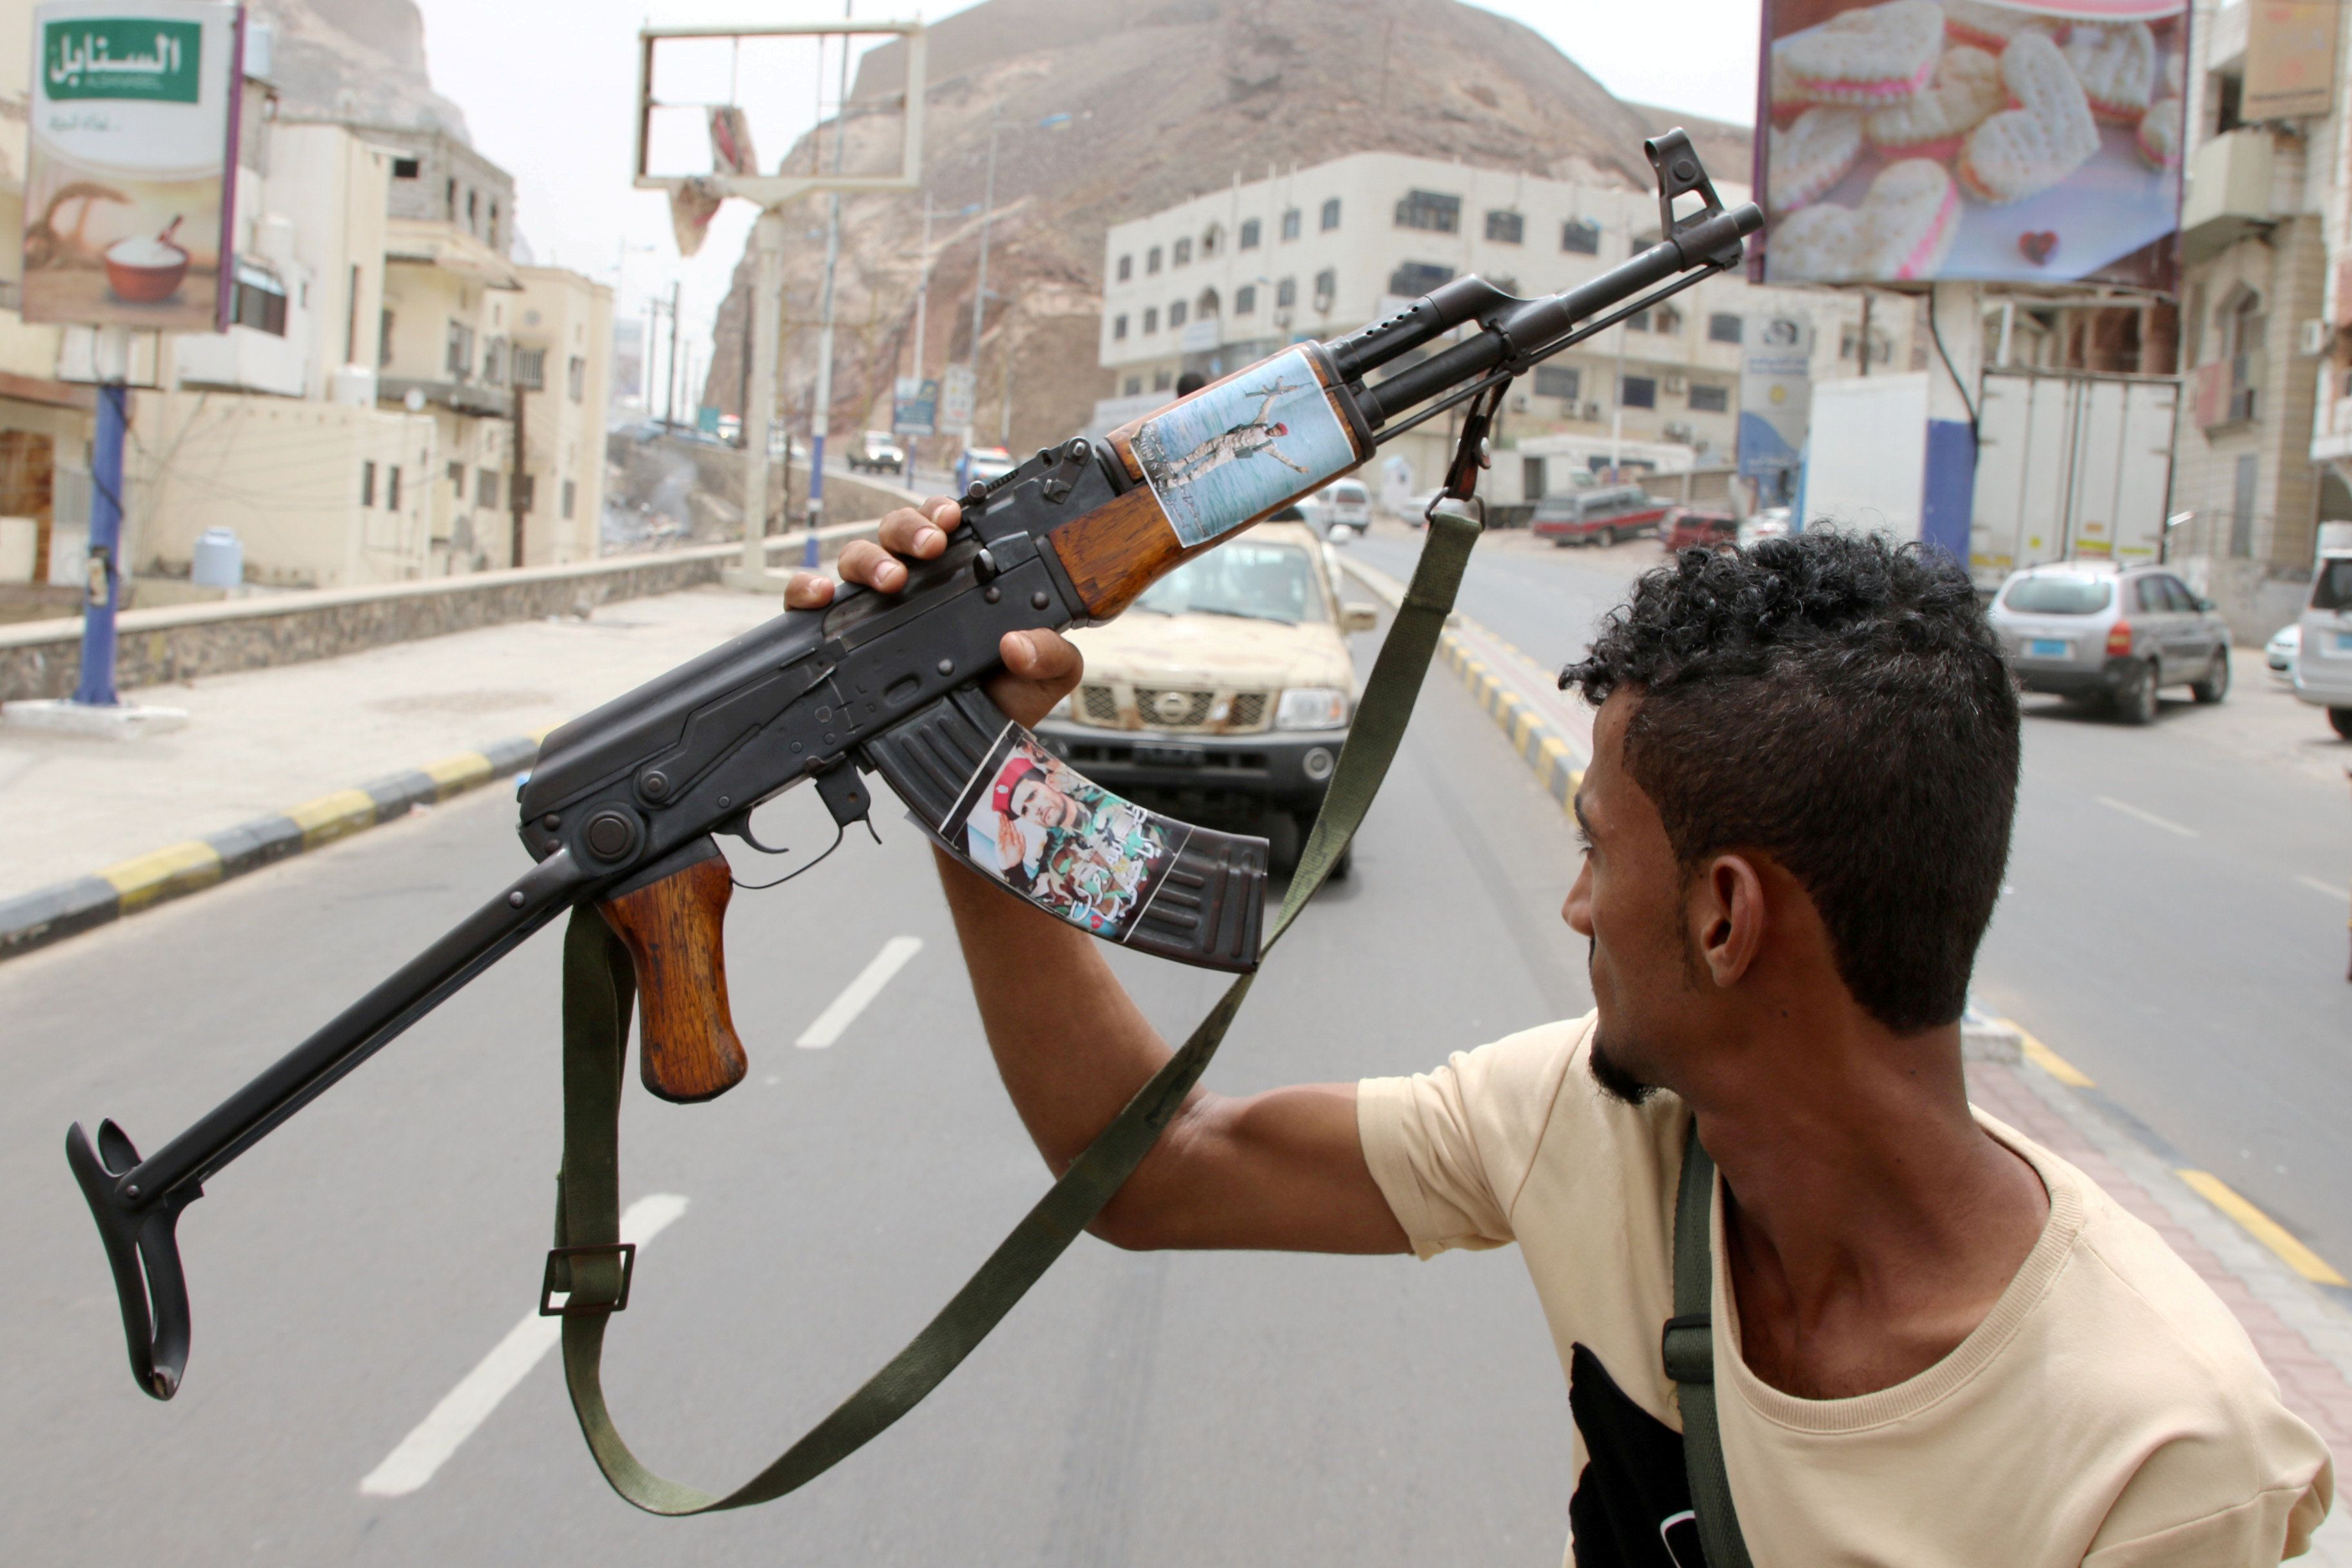 What We're Watching: Yemen's Fractured Alliances and An Ominous Russian Explosion